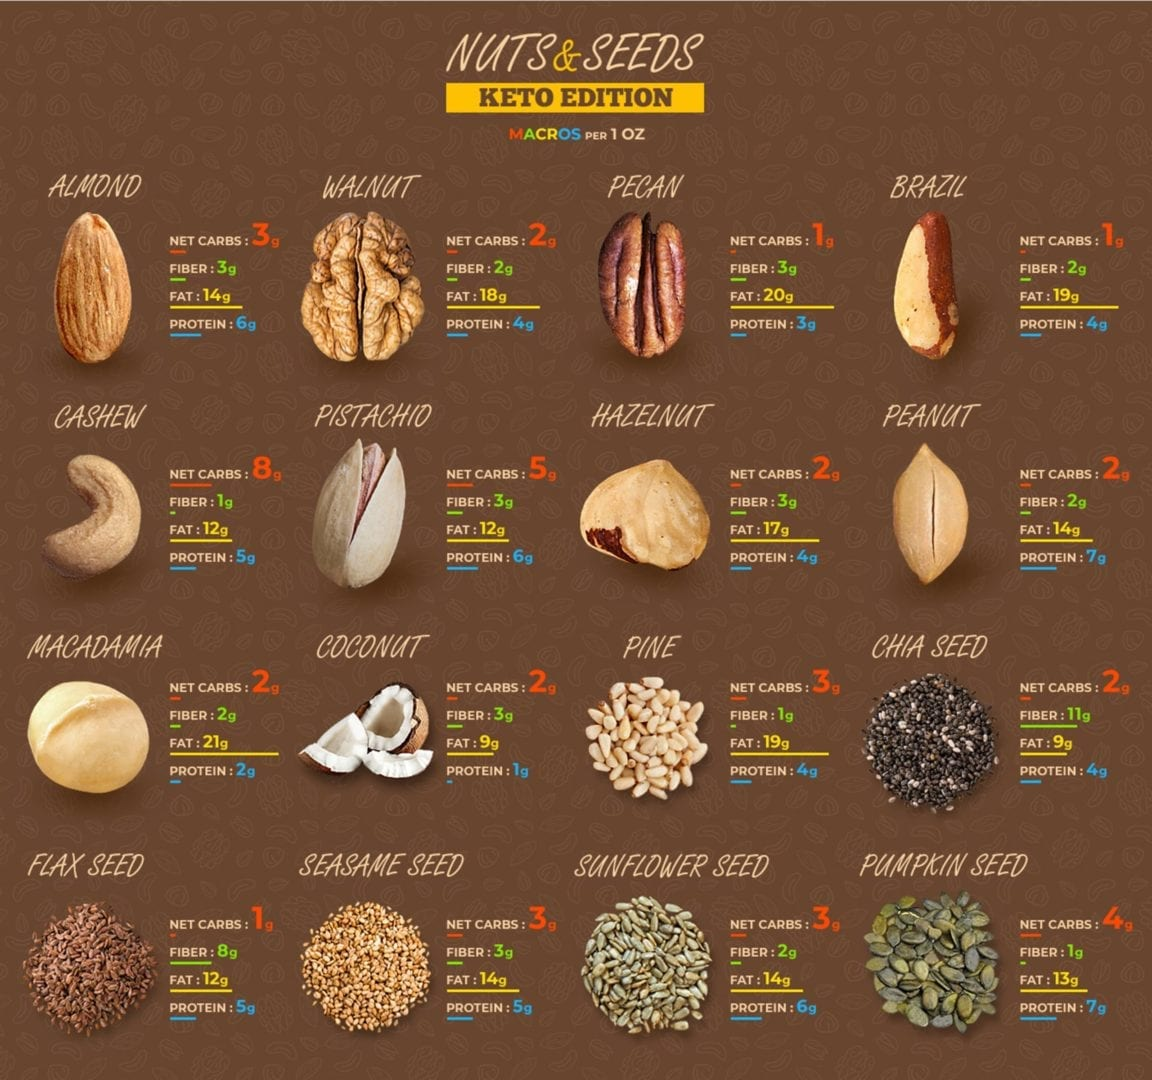 different types of nuts on a ketogenic diet